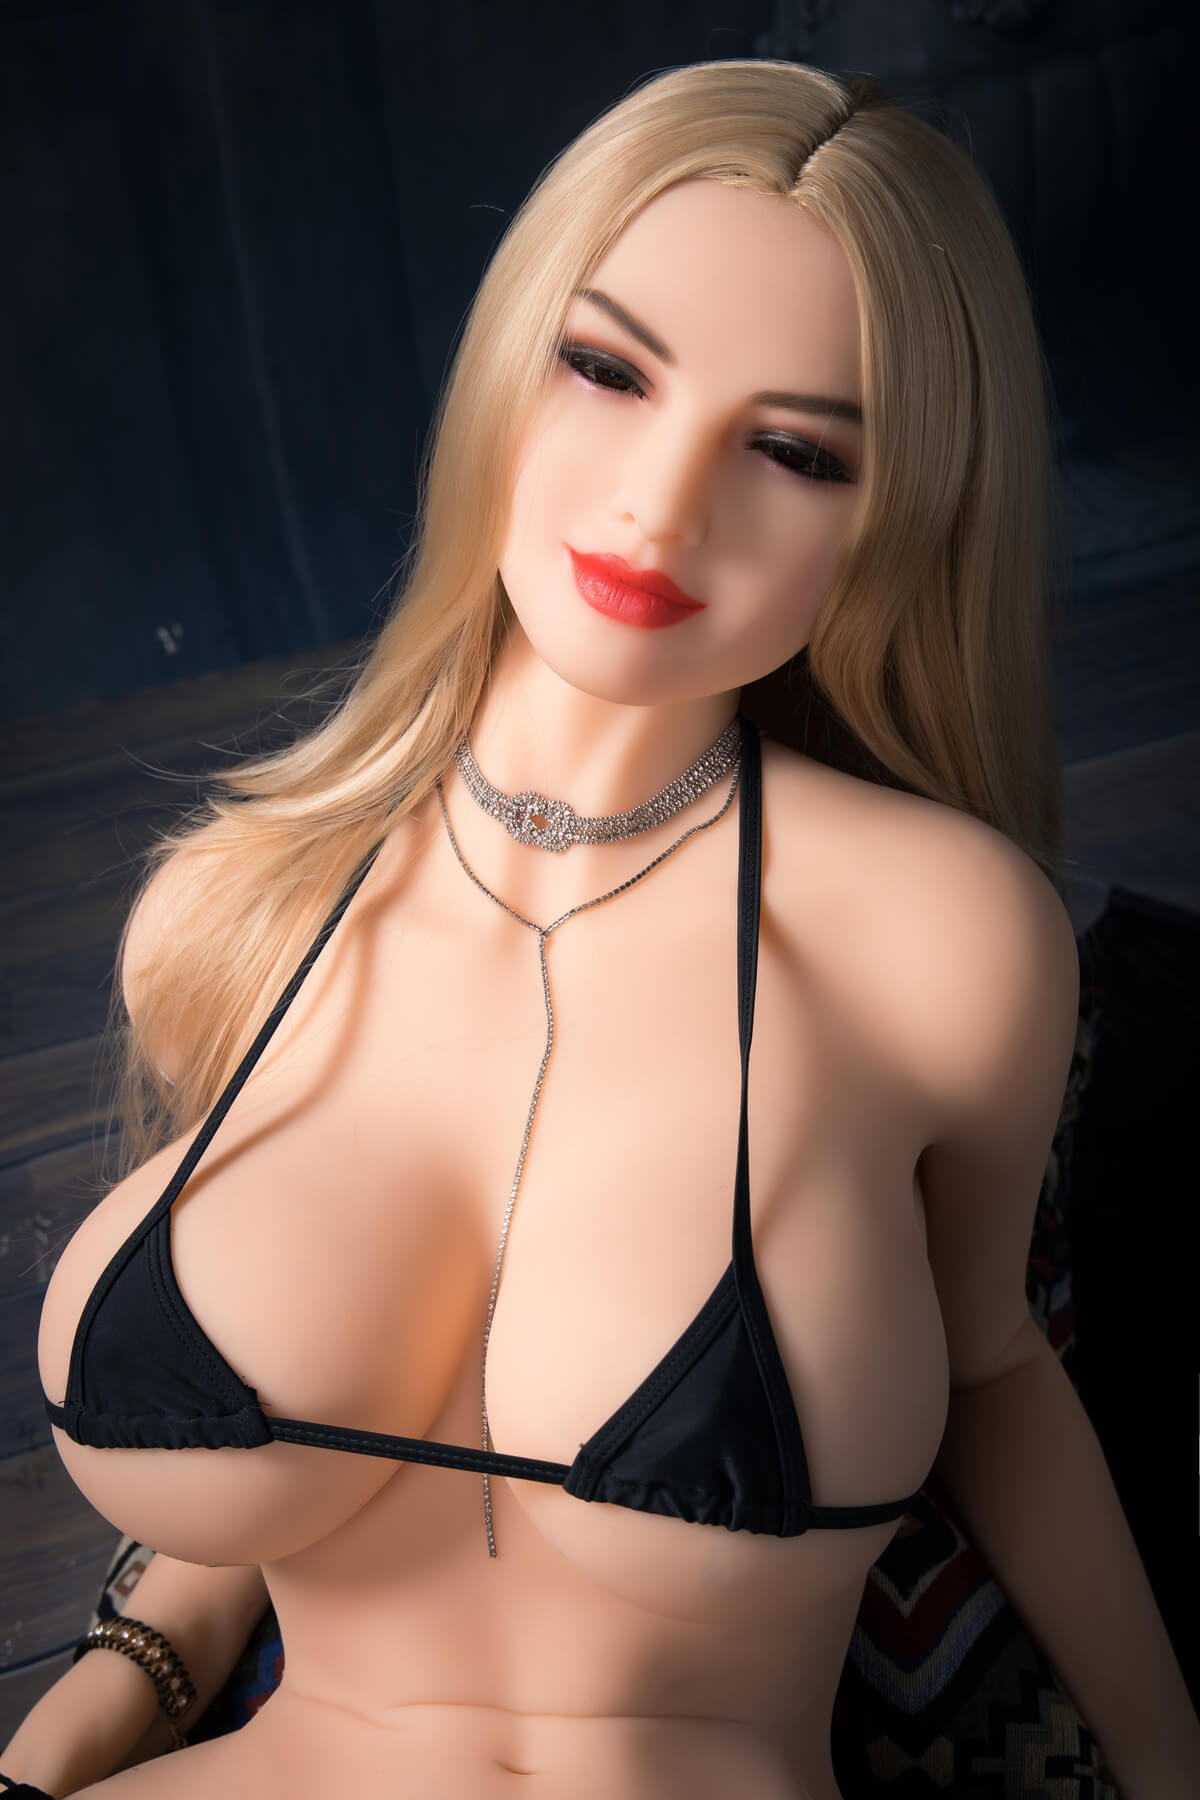 165cm Big Ass Sex Doll & AI Sex Robot - Emma